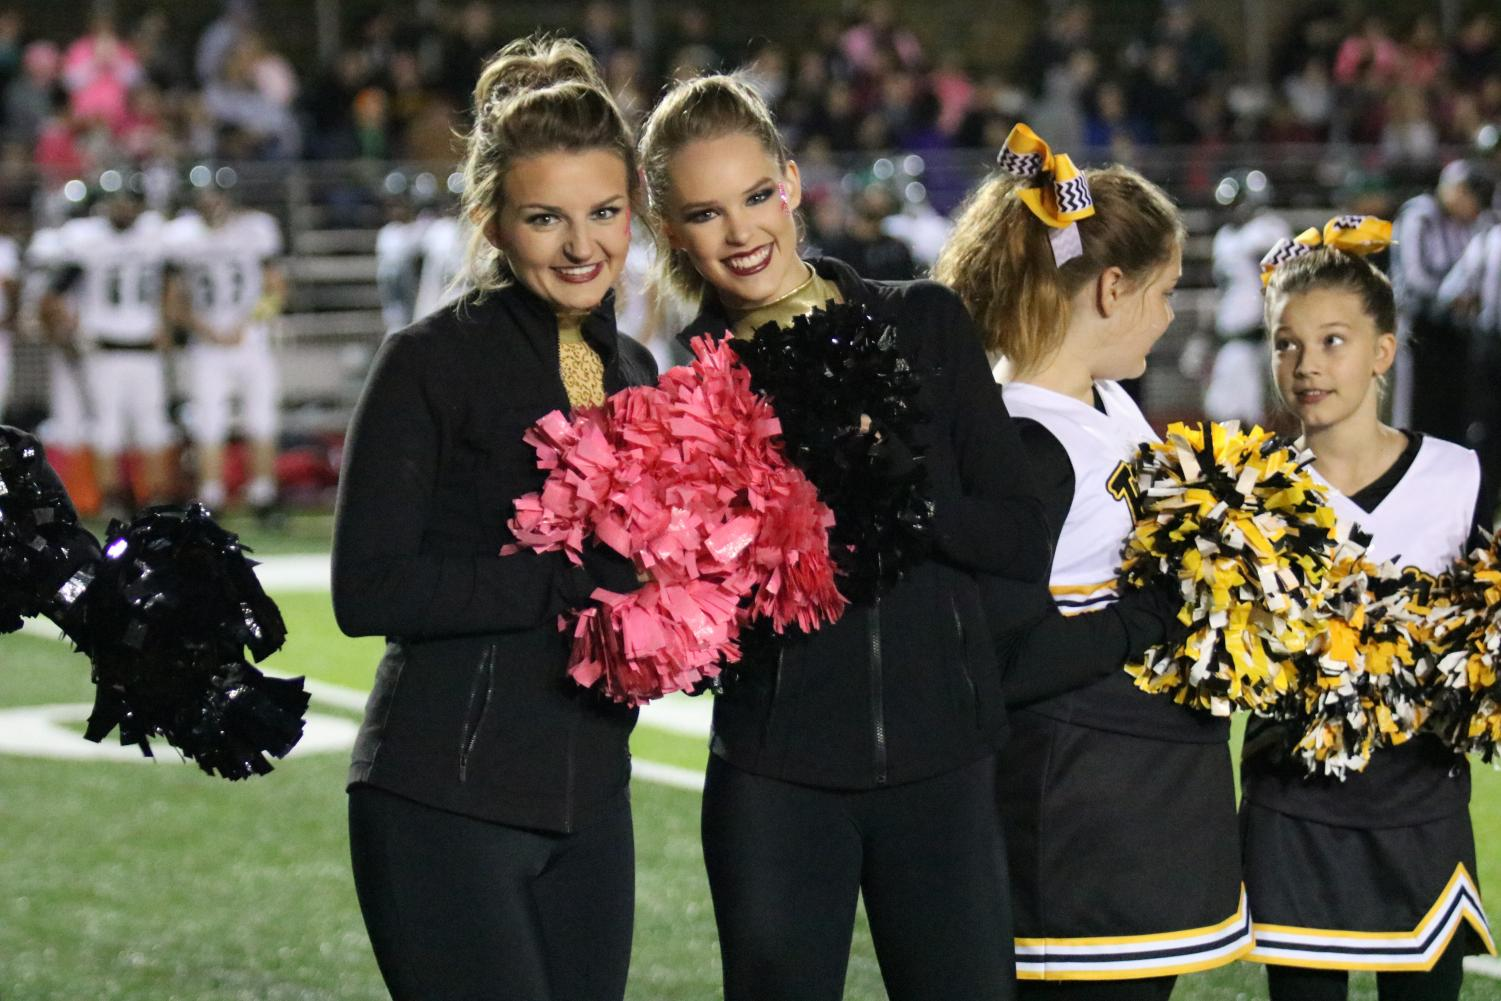 Morgan Murphy (12) and Carolyn Grayson (12) pose together at a home football game.